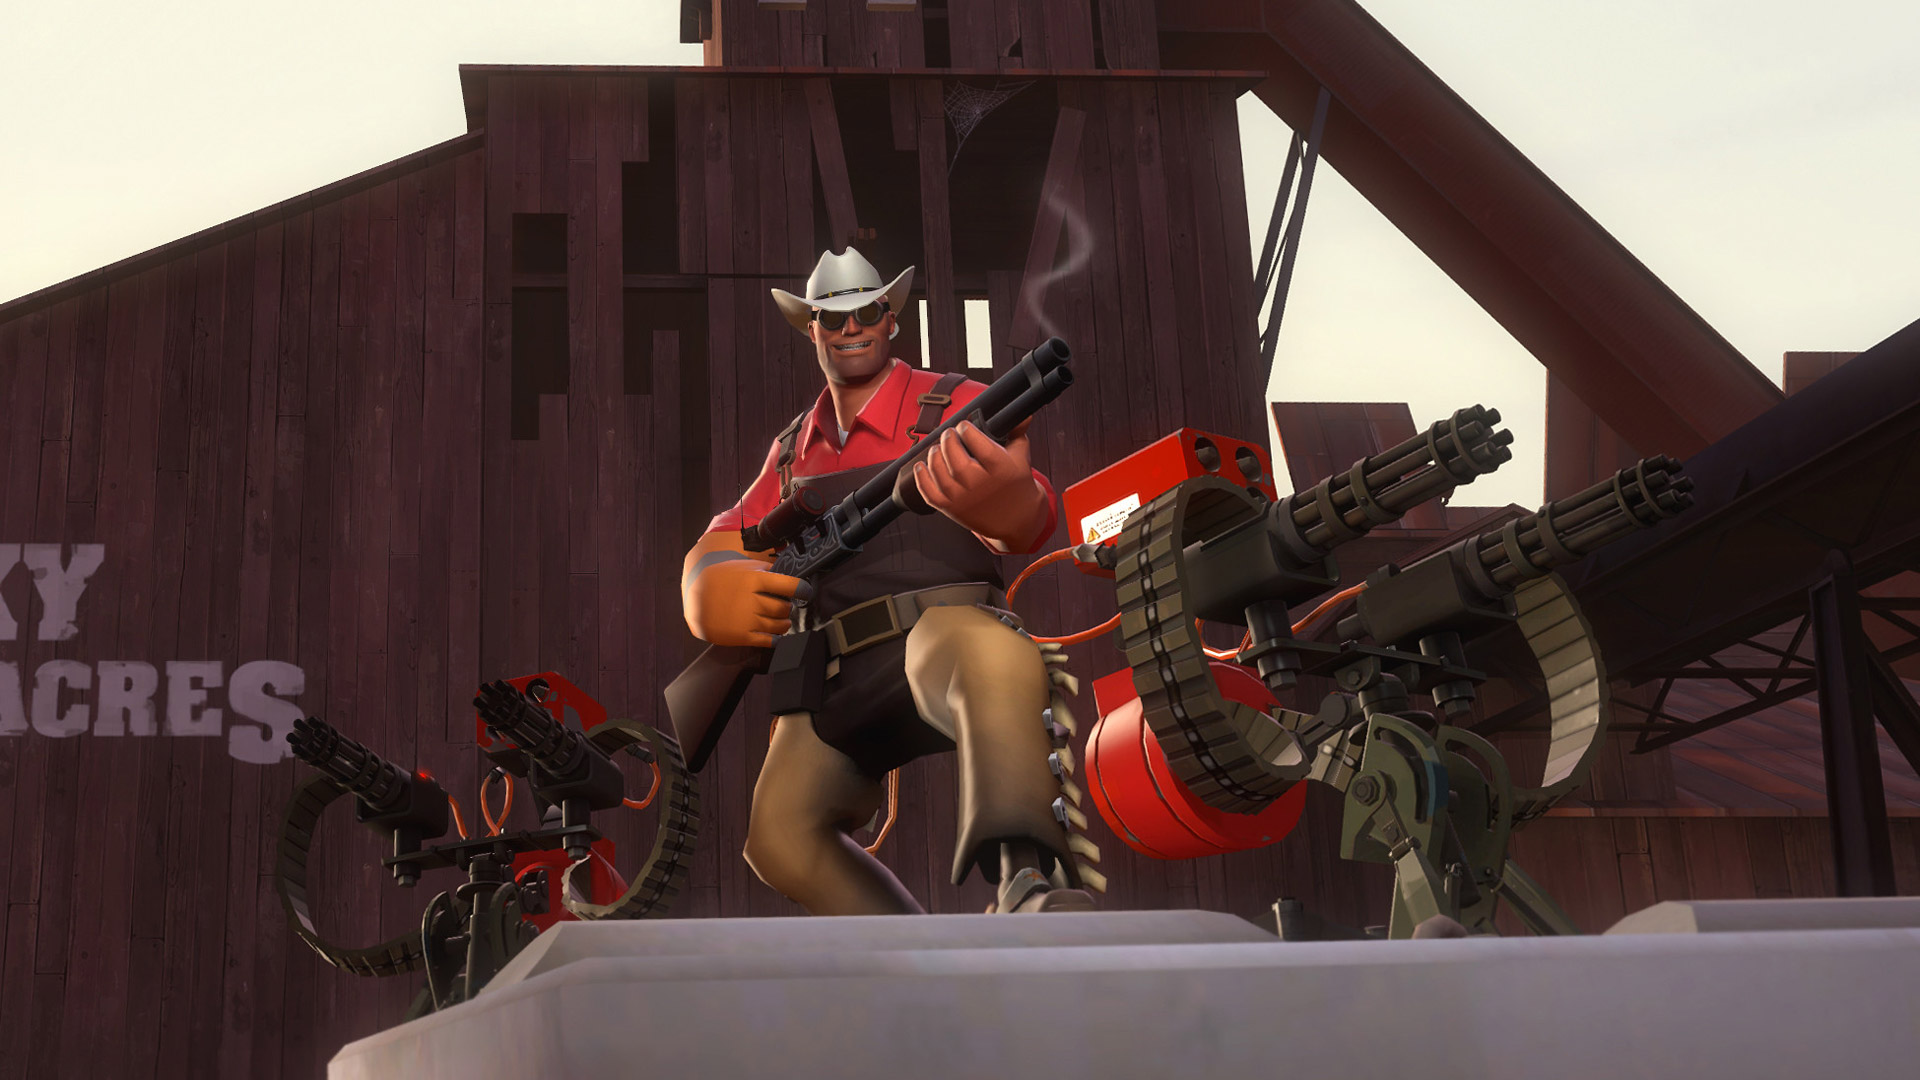 Free Team Fortress 2 Wallpaper in 1920x1080